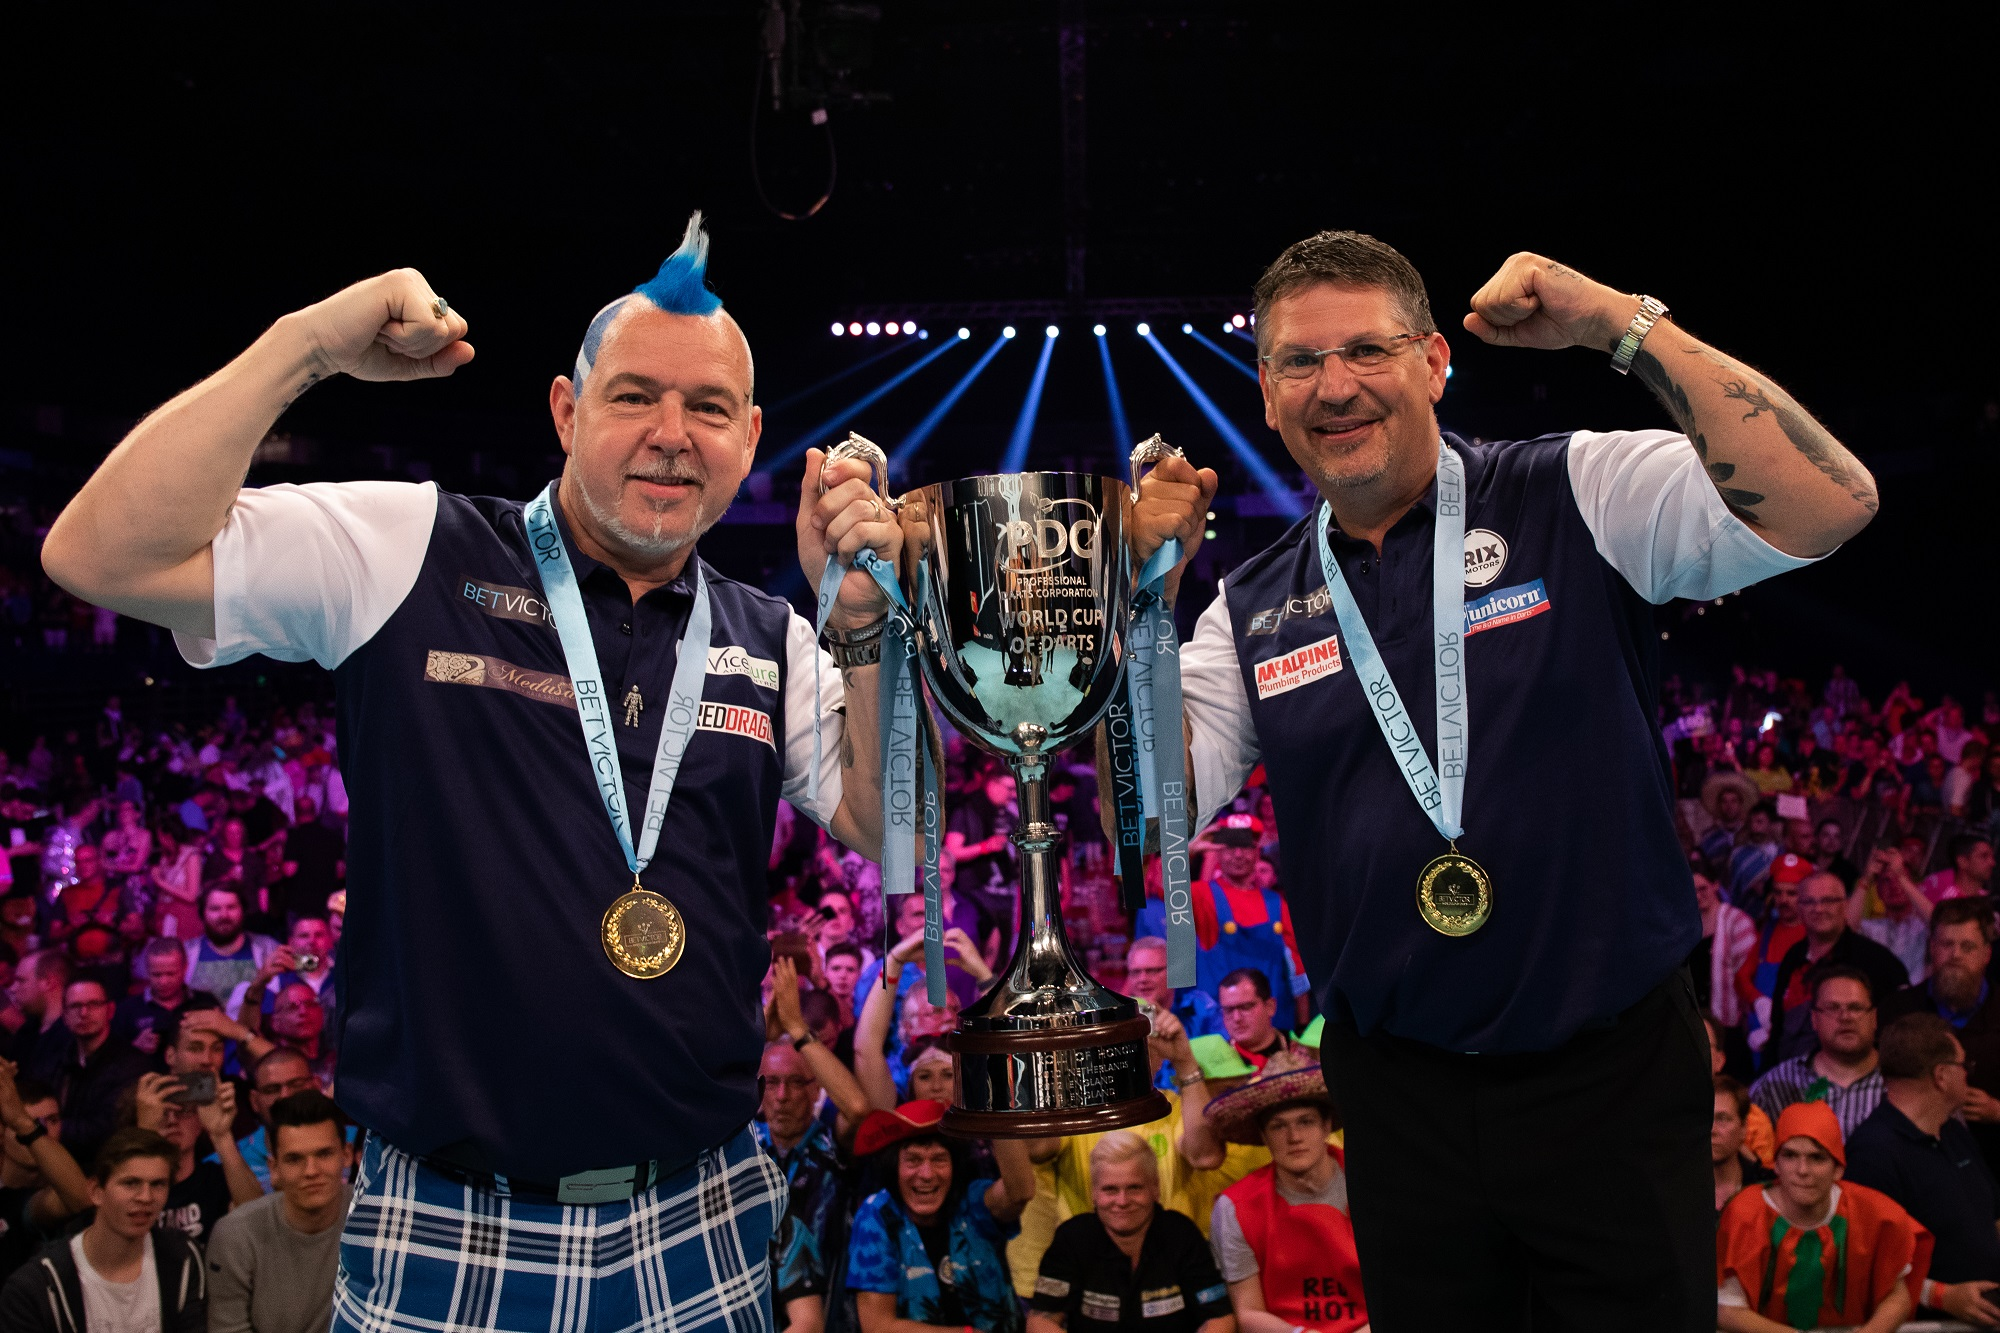 World Cup of Darts draw announced